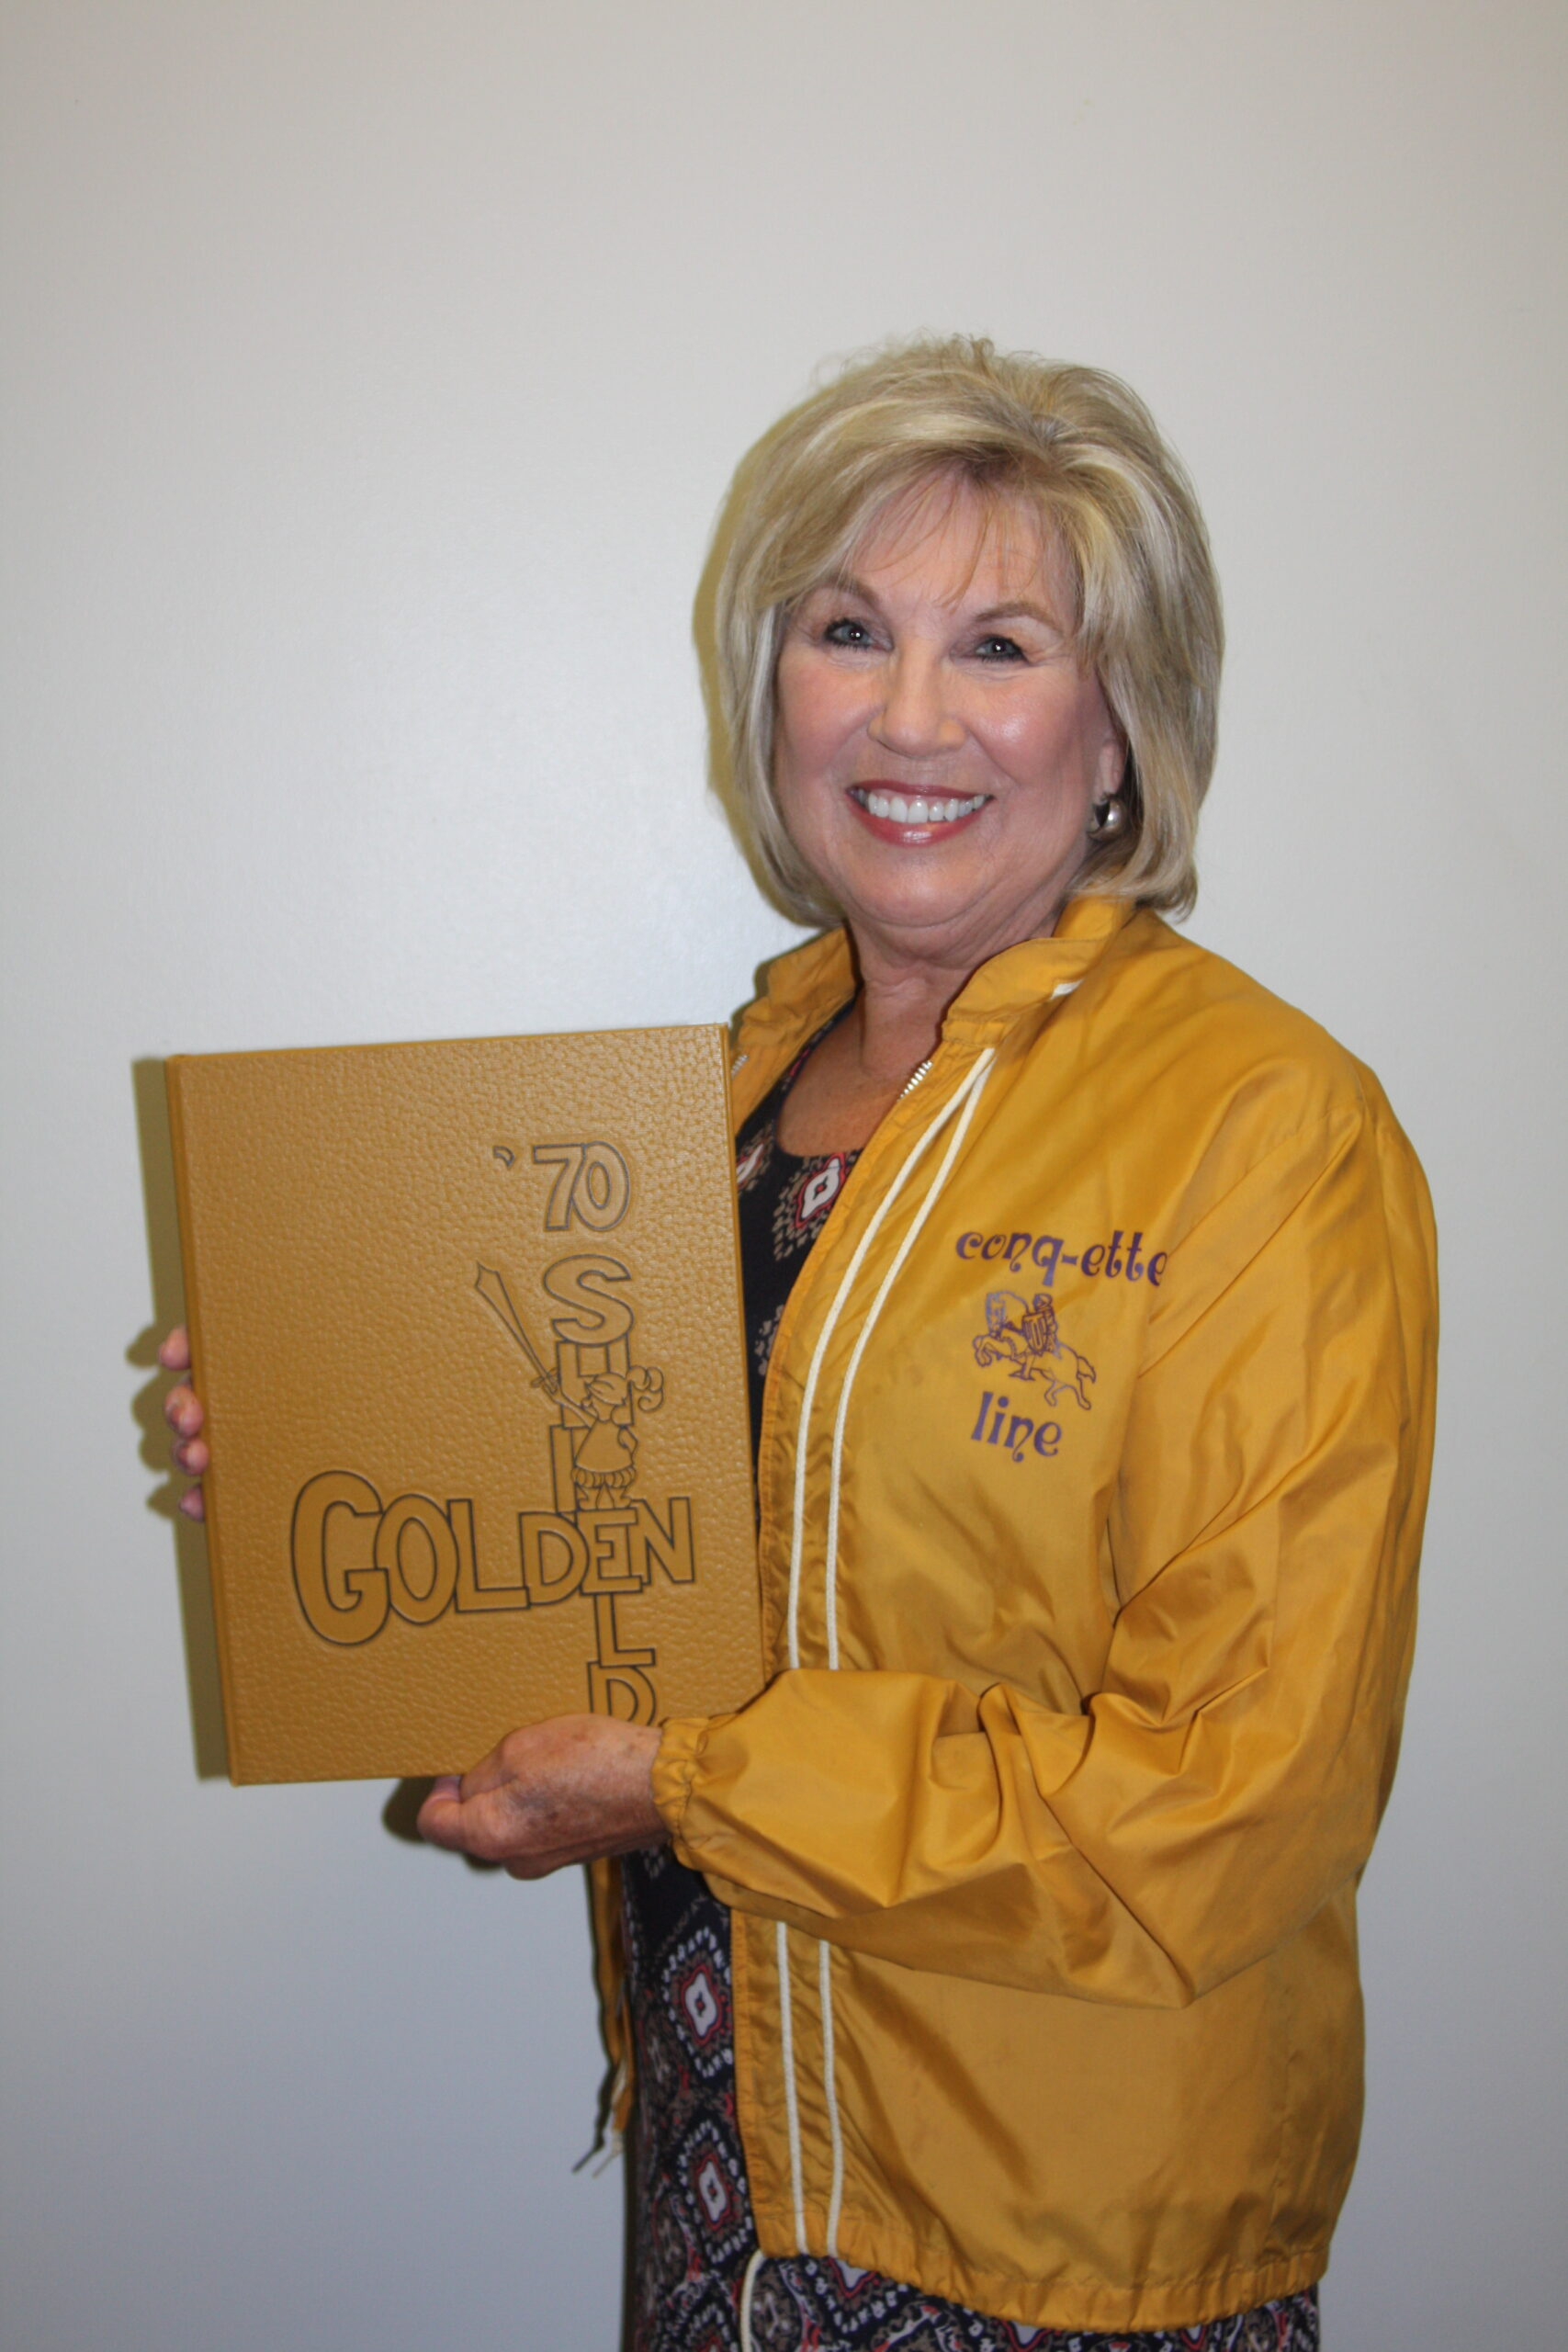 DC3 Board of Trustee, Kathy Ramsour poses with the Golden Shield yearbook and Conquette jacket